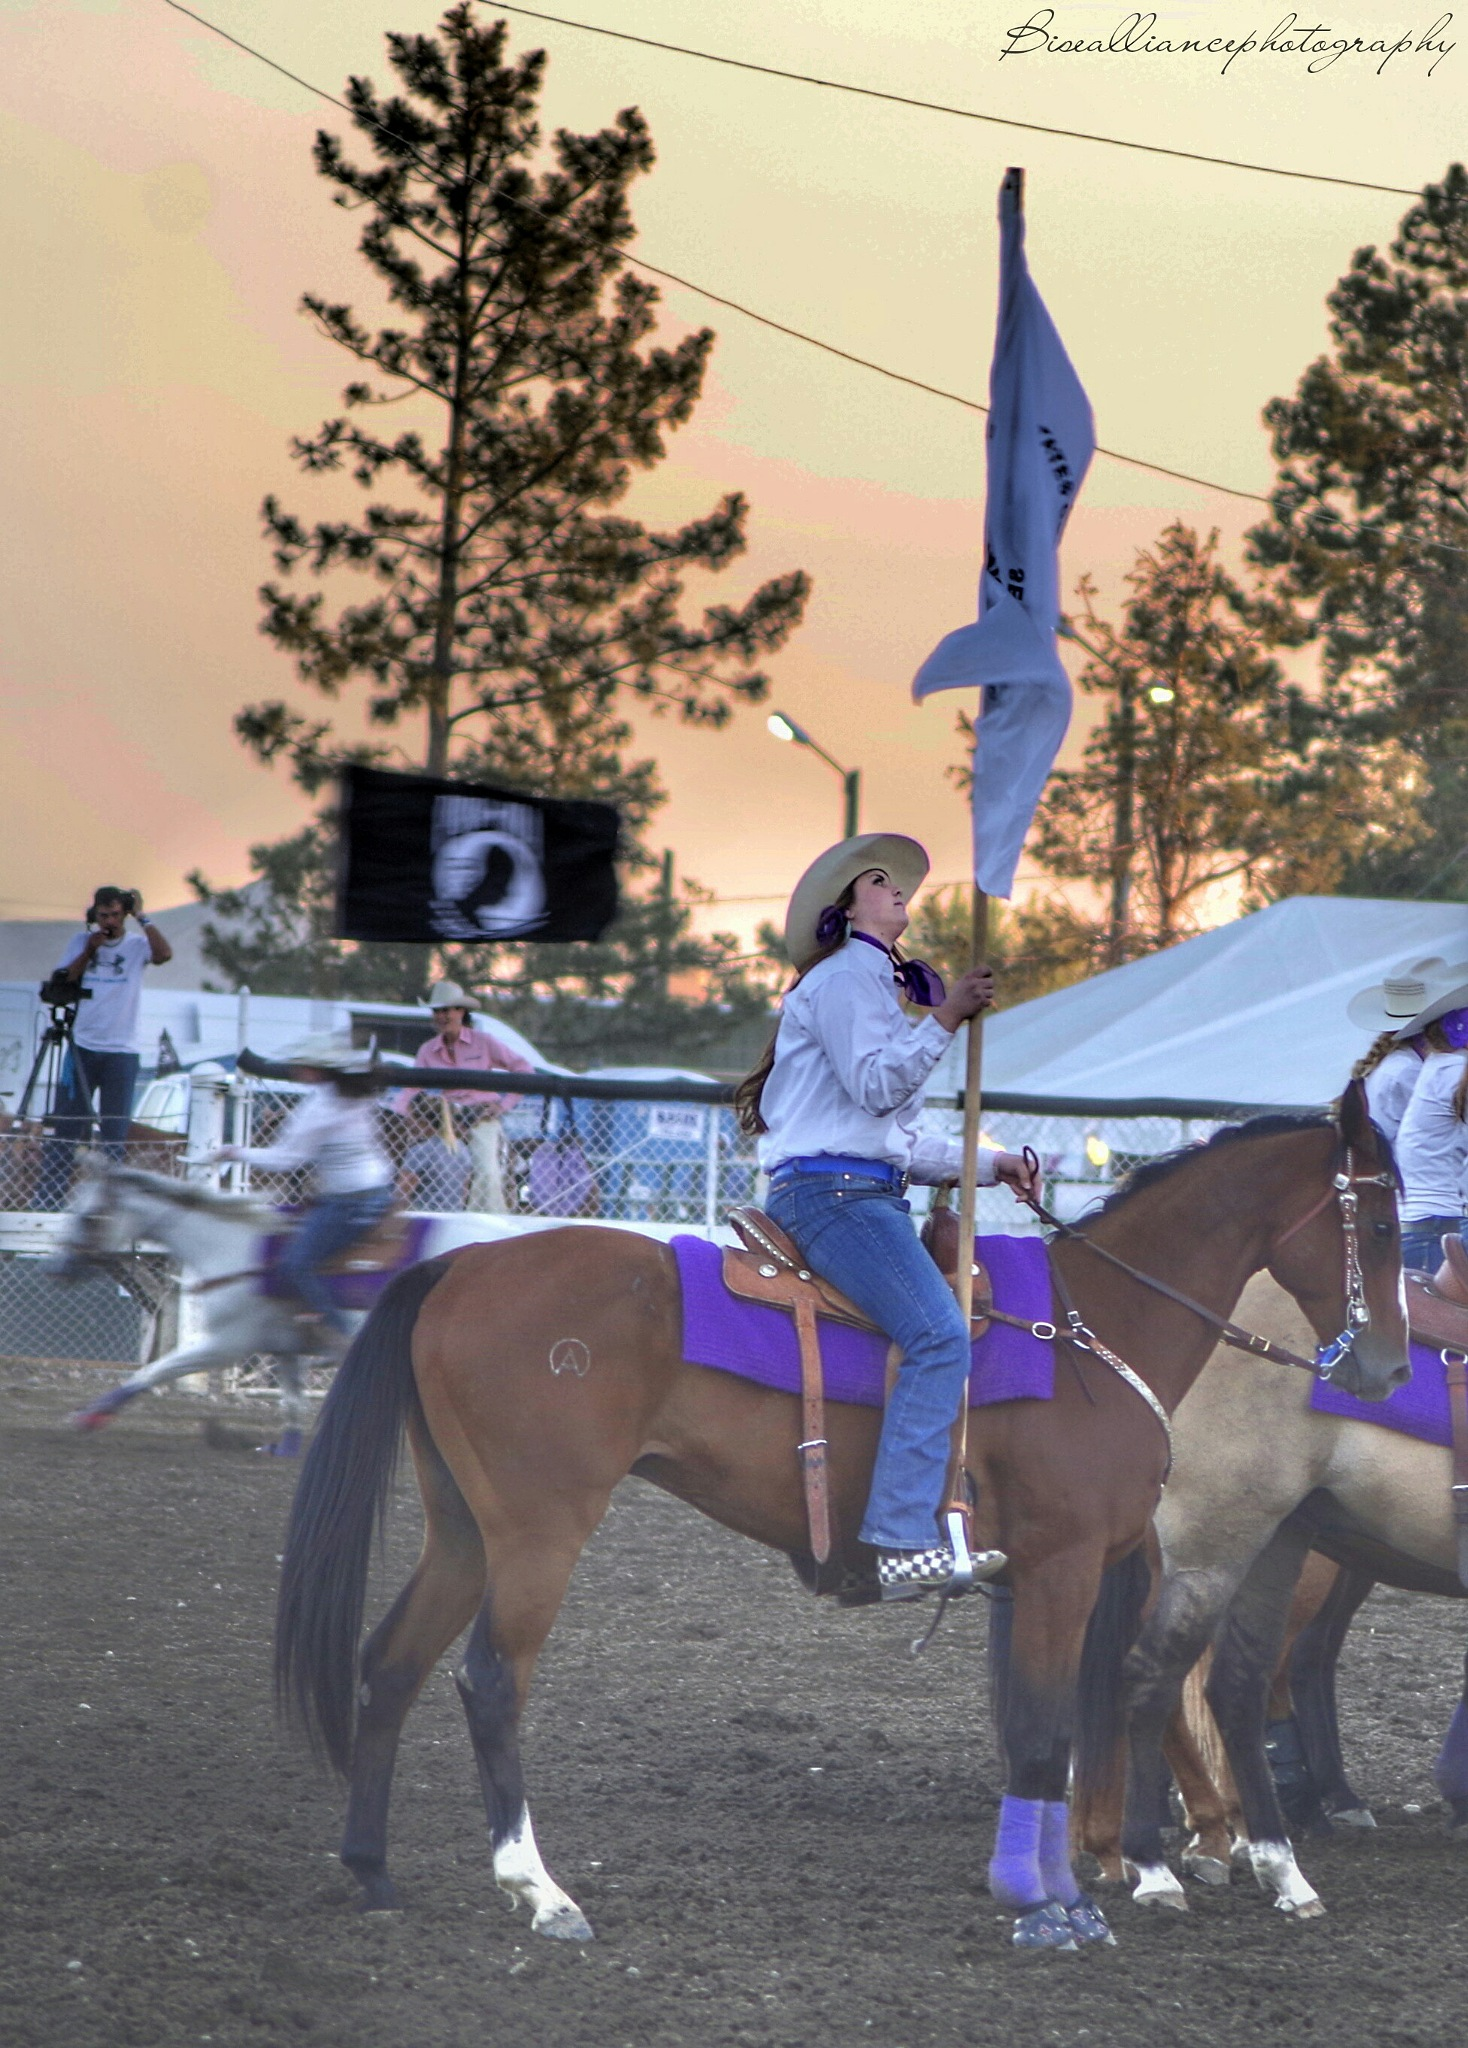 Moses Lake Roundup Rodeo 2016 by Brayden Bise